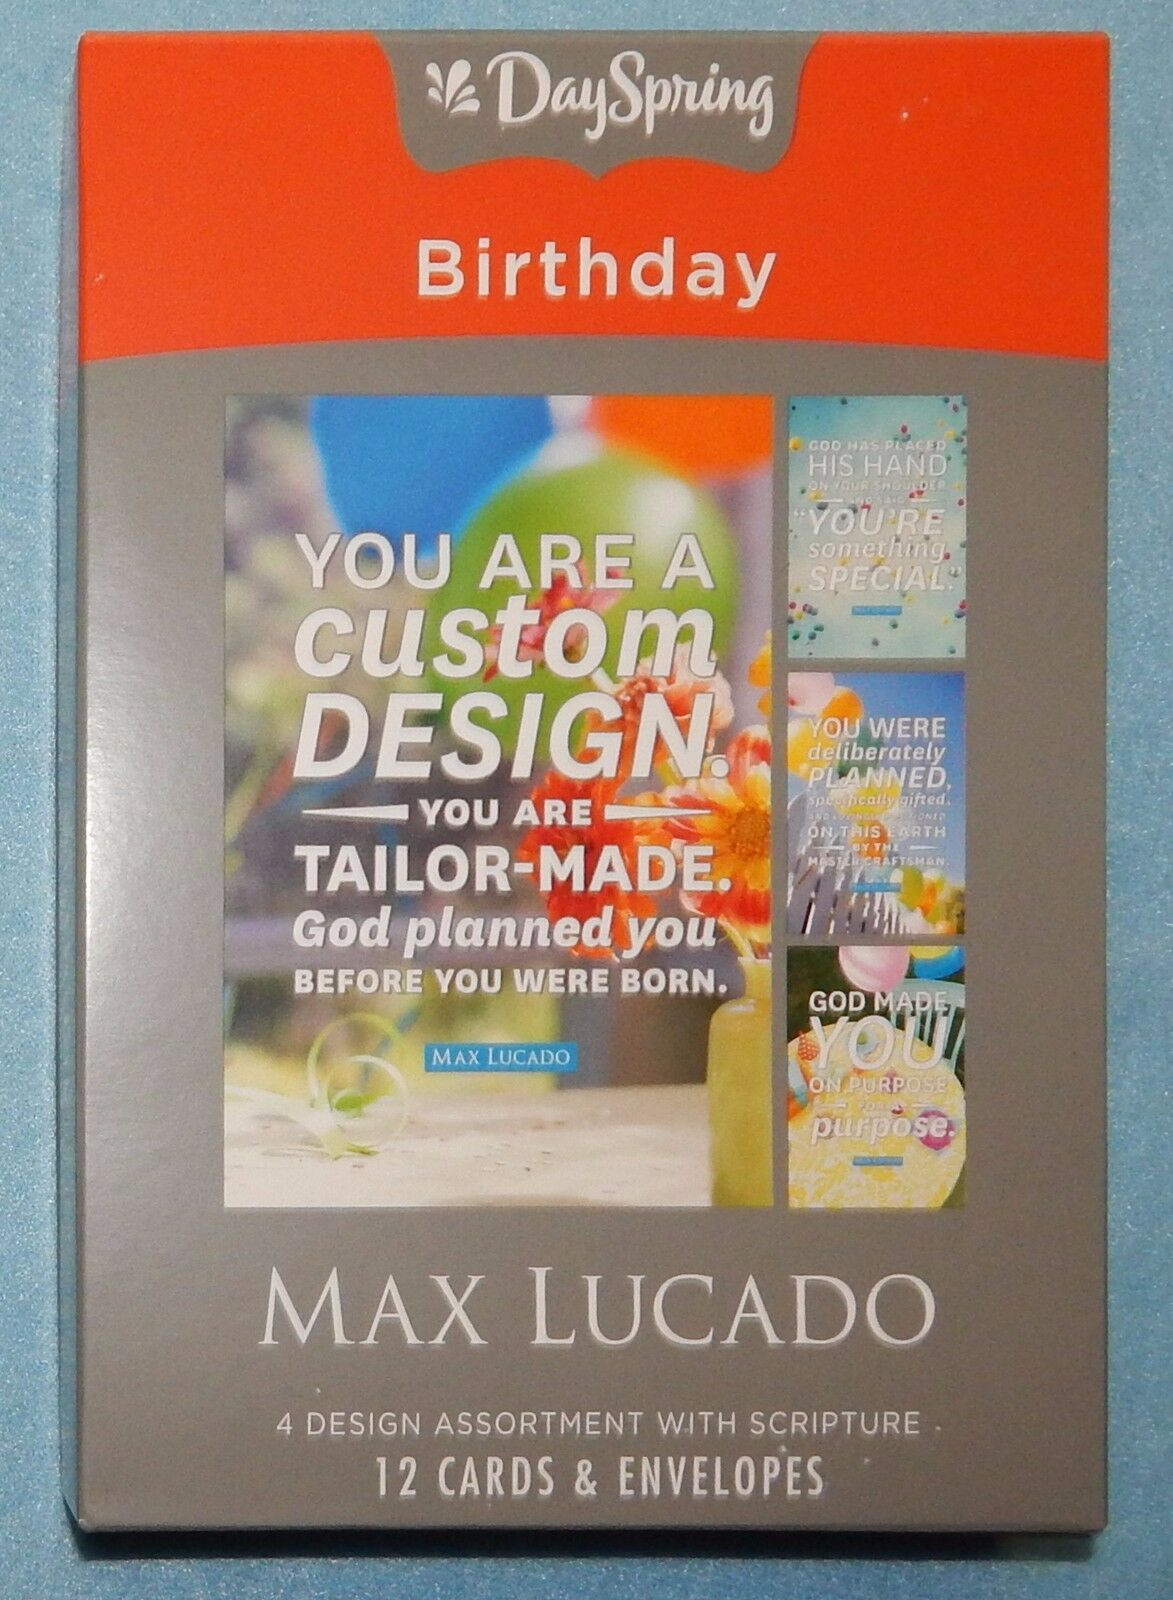 Dayspring birthday boxed greeting cards 12 count with embossed dayspring birthday boxed greeting cards 12 count with embossed envelopes max lucado god made you 53682 ebay kristyandbryce Choice Image